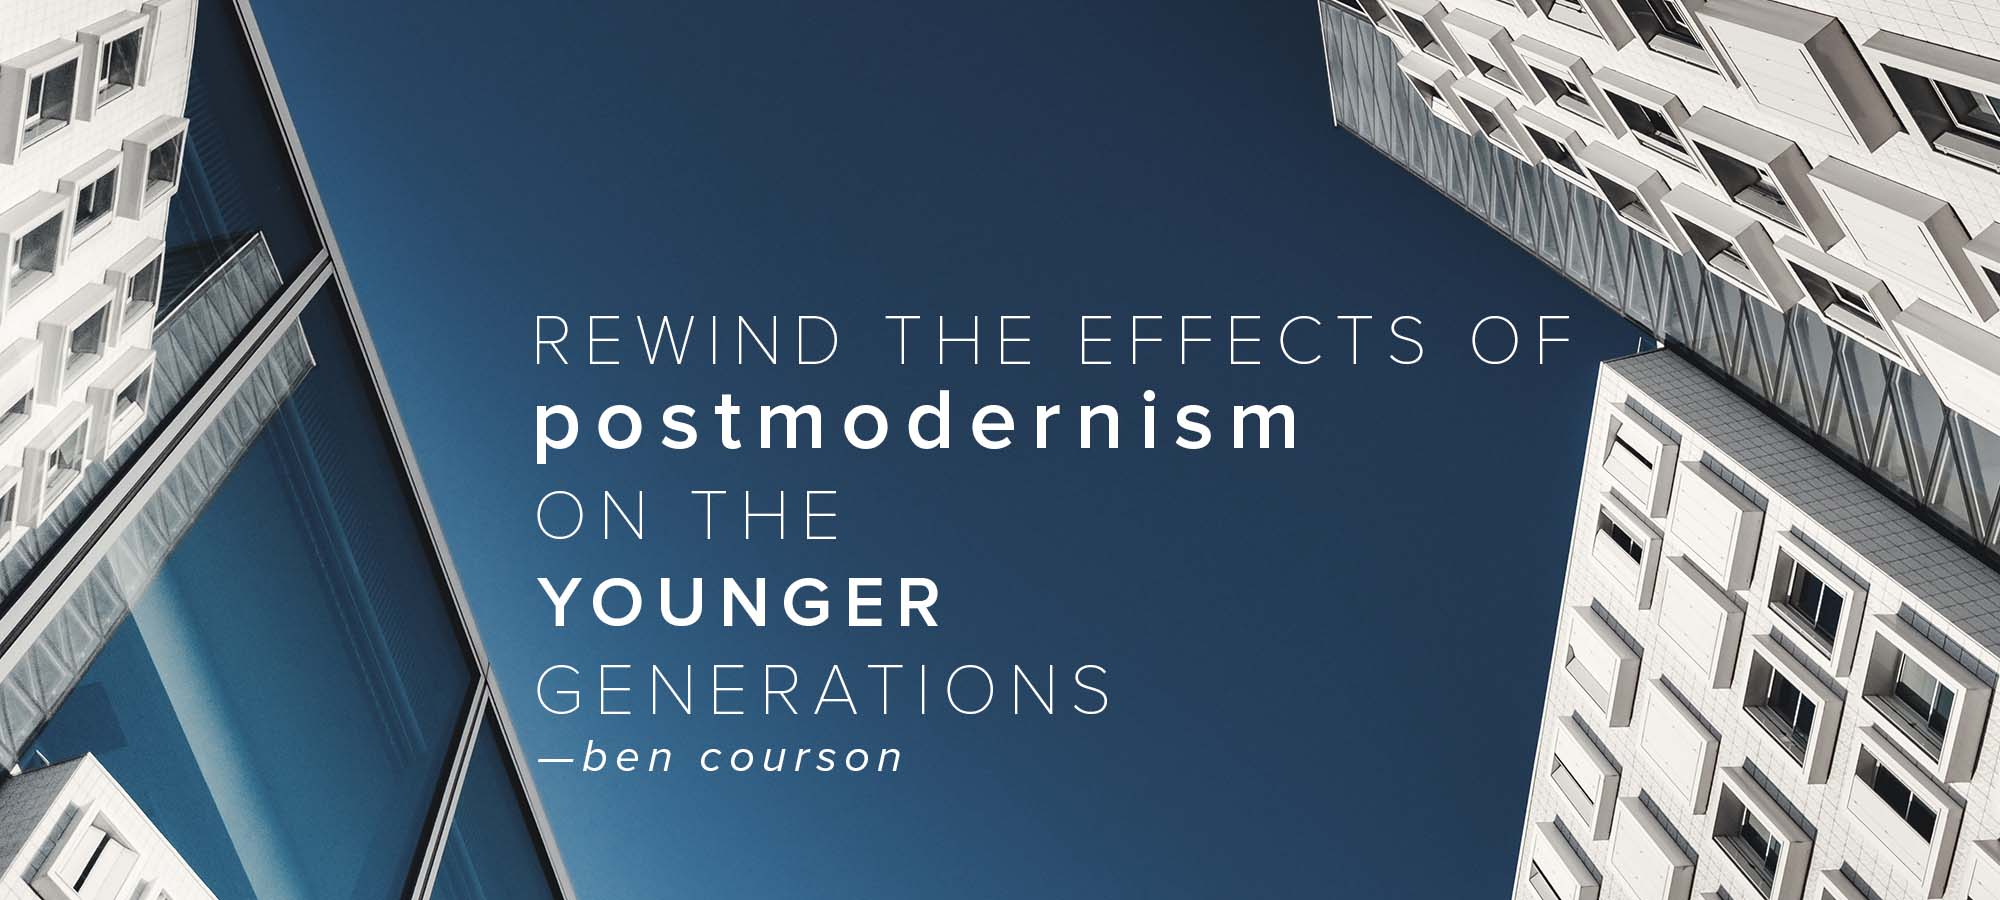 Rewind the Effects of Postmodernism on Younger Generations